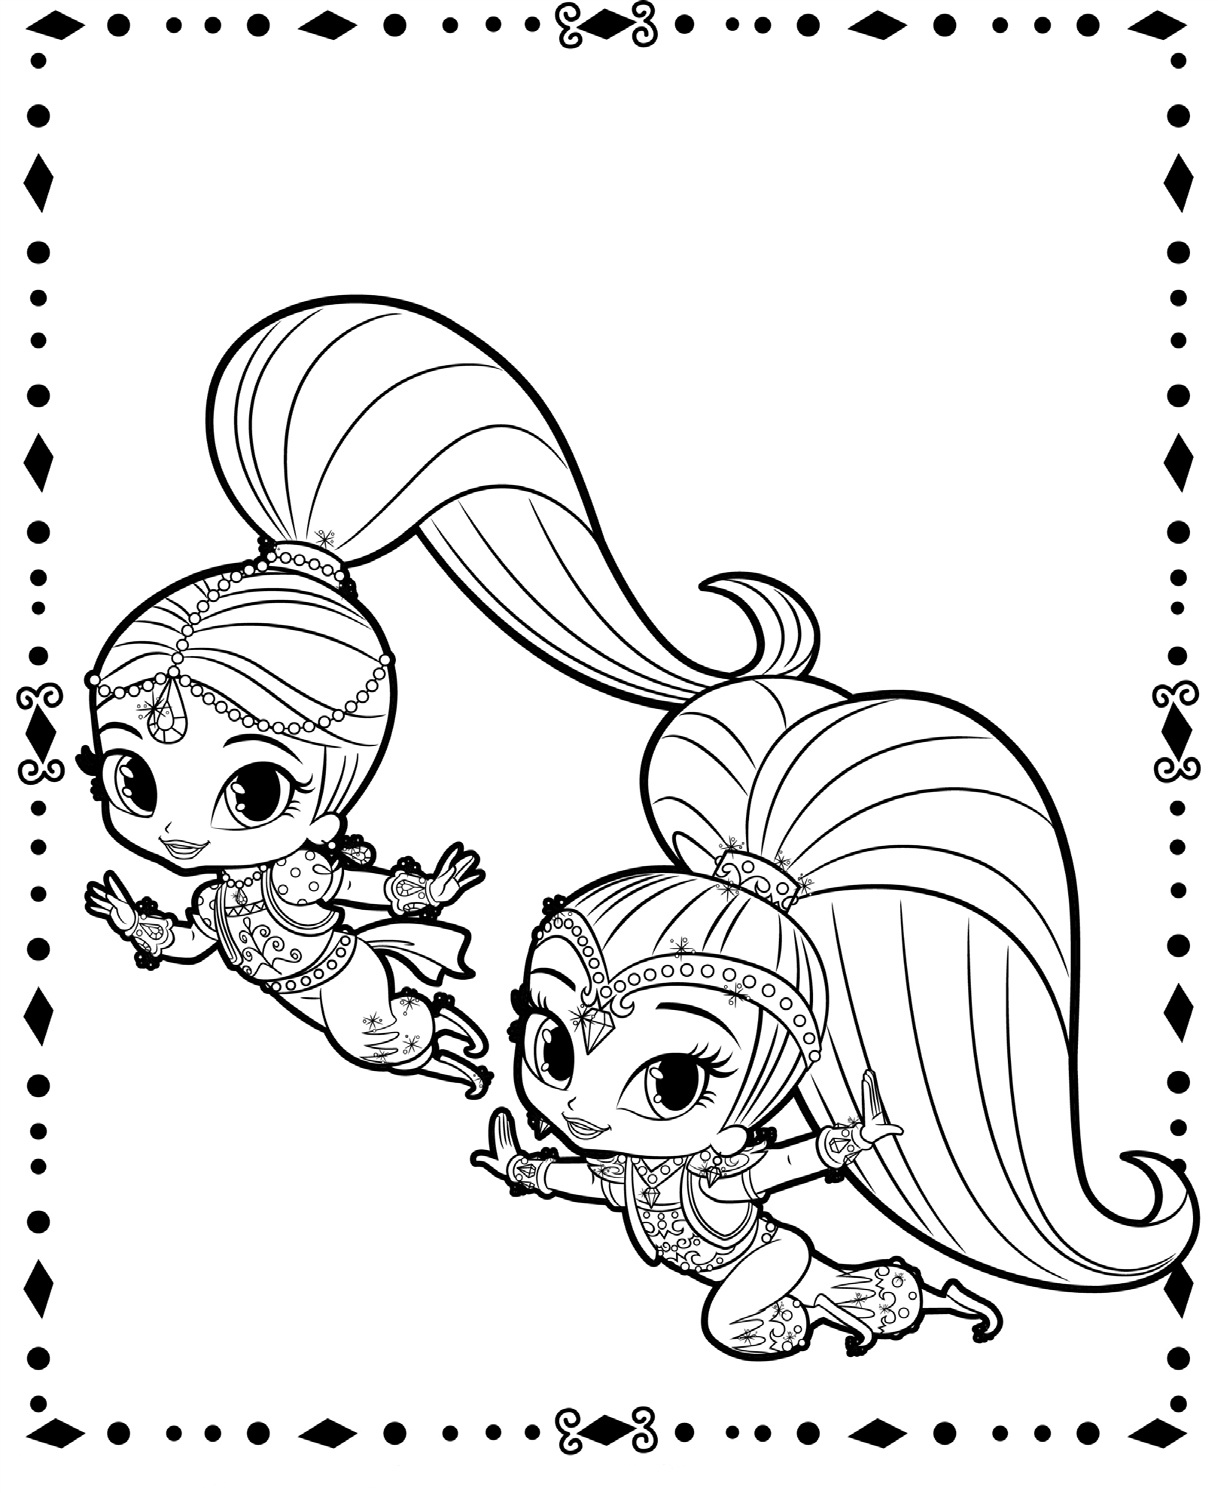 It's just a photo of Wild shimmer and shine coloring book